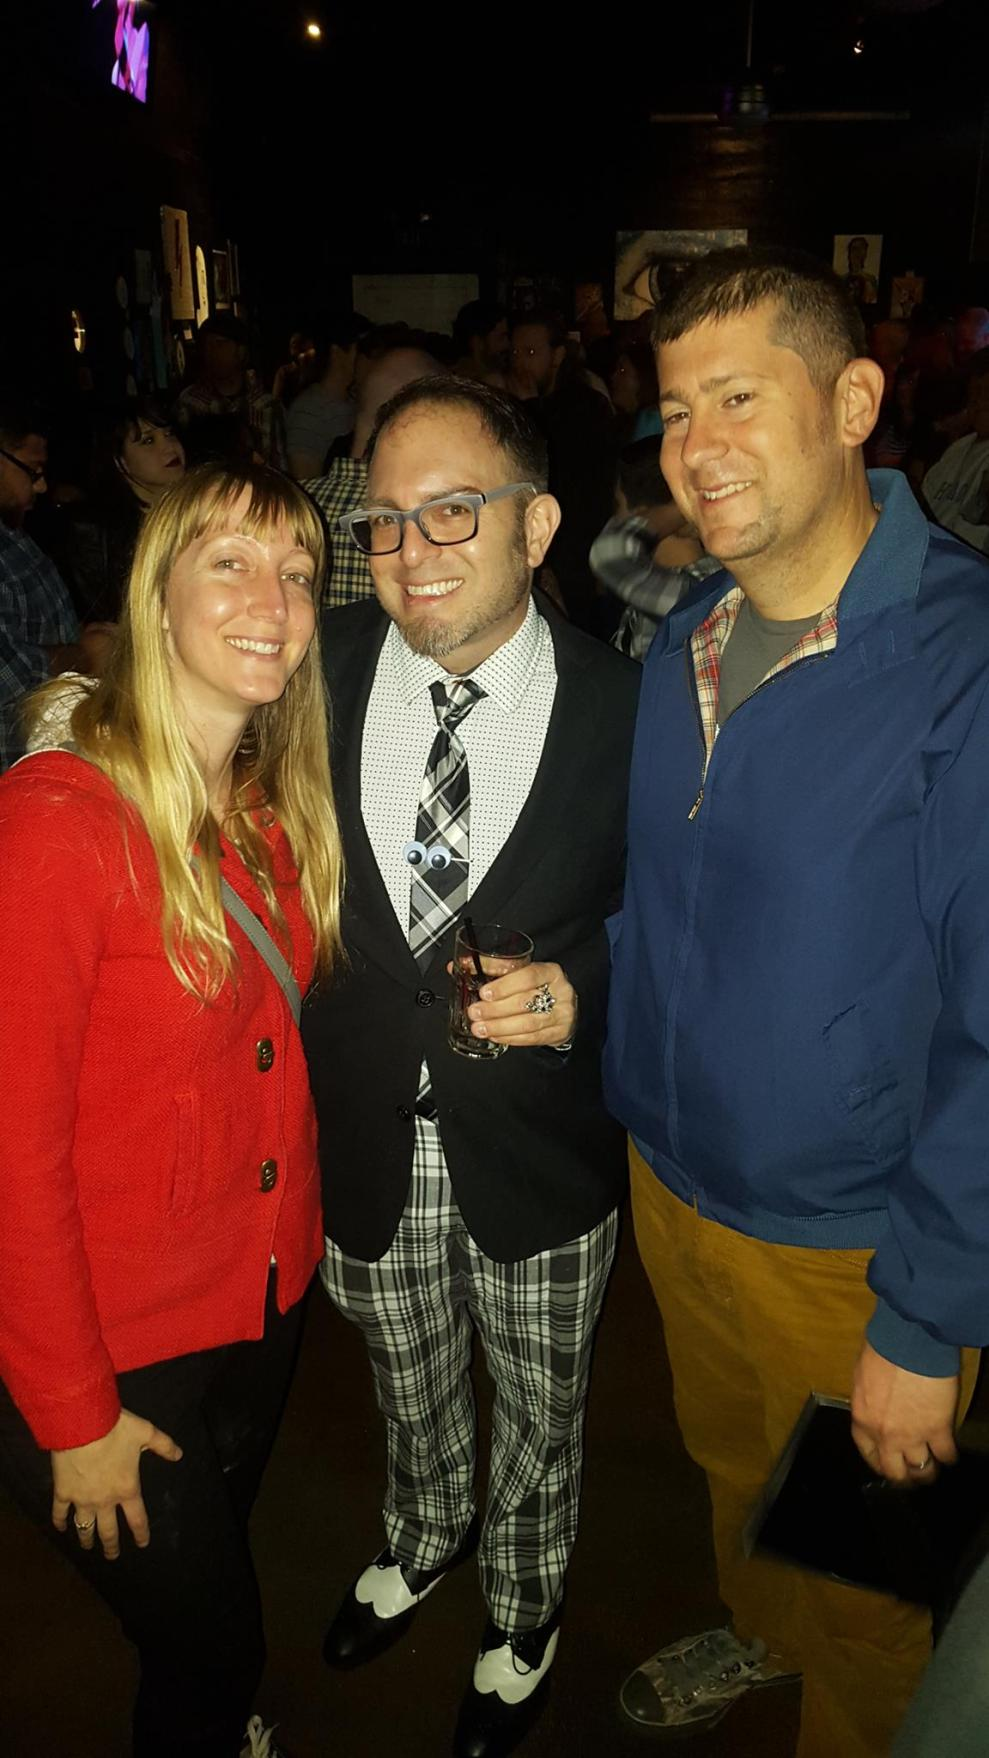 Heather Simoni (left), Mig Law and Tony Simoni at the Life On Mars show at the Blue Lamp in Sacramento CA. February 2016. Photo provided my Mig Law.